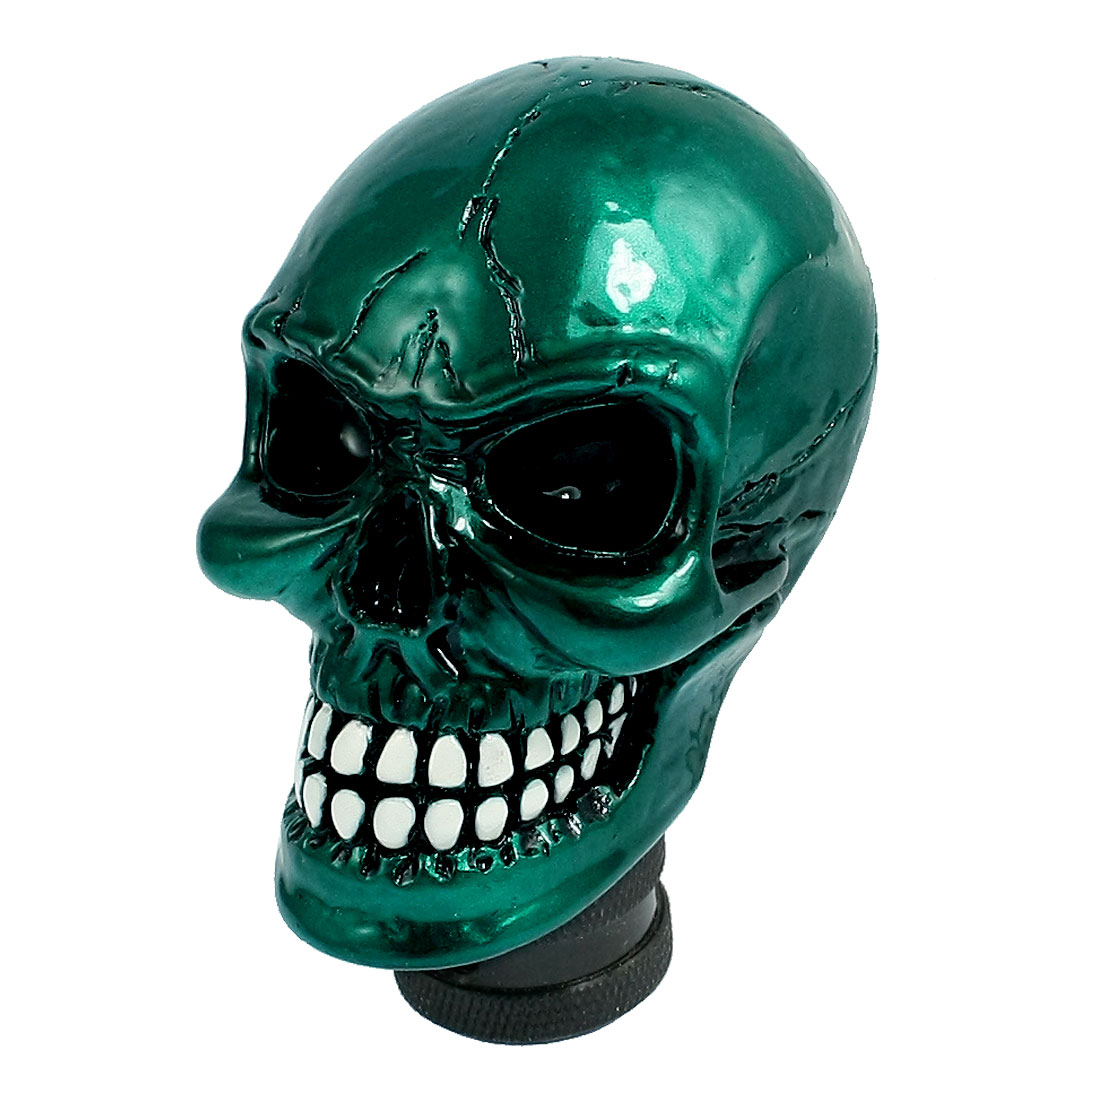 Cracked Skull Stick Shift Gear Shifter Knob Cover Teal Blue for Car Truck